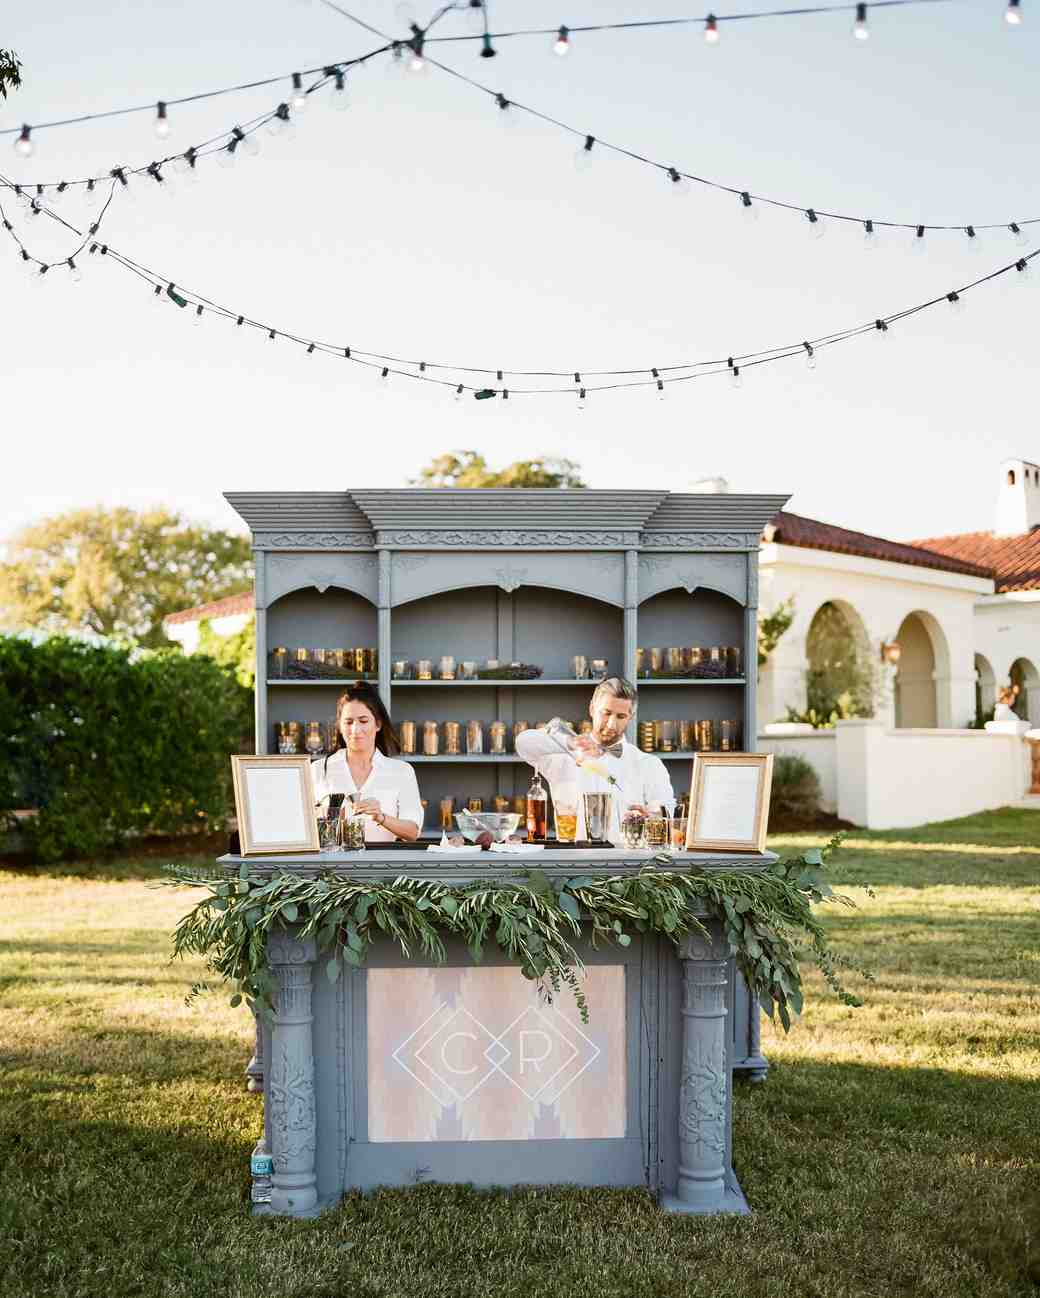 20 Creative Wedding Bar ideas to Inspire